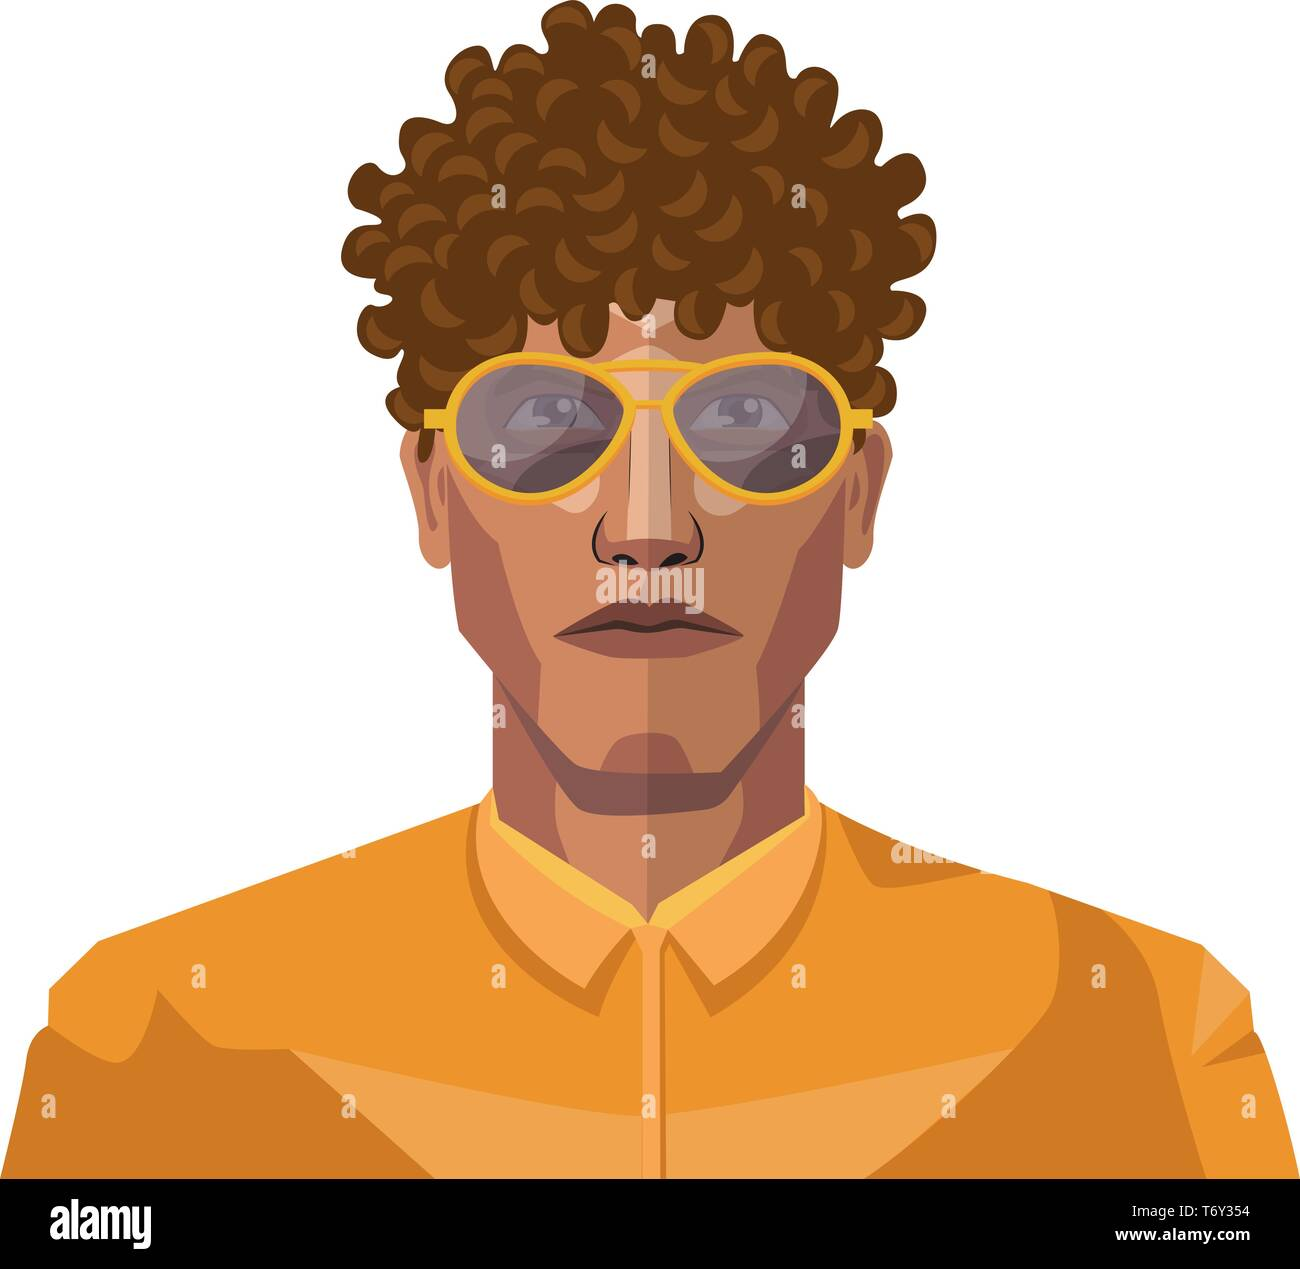 Handsome Guy With Short Curly Hair Illustration Vector On White